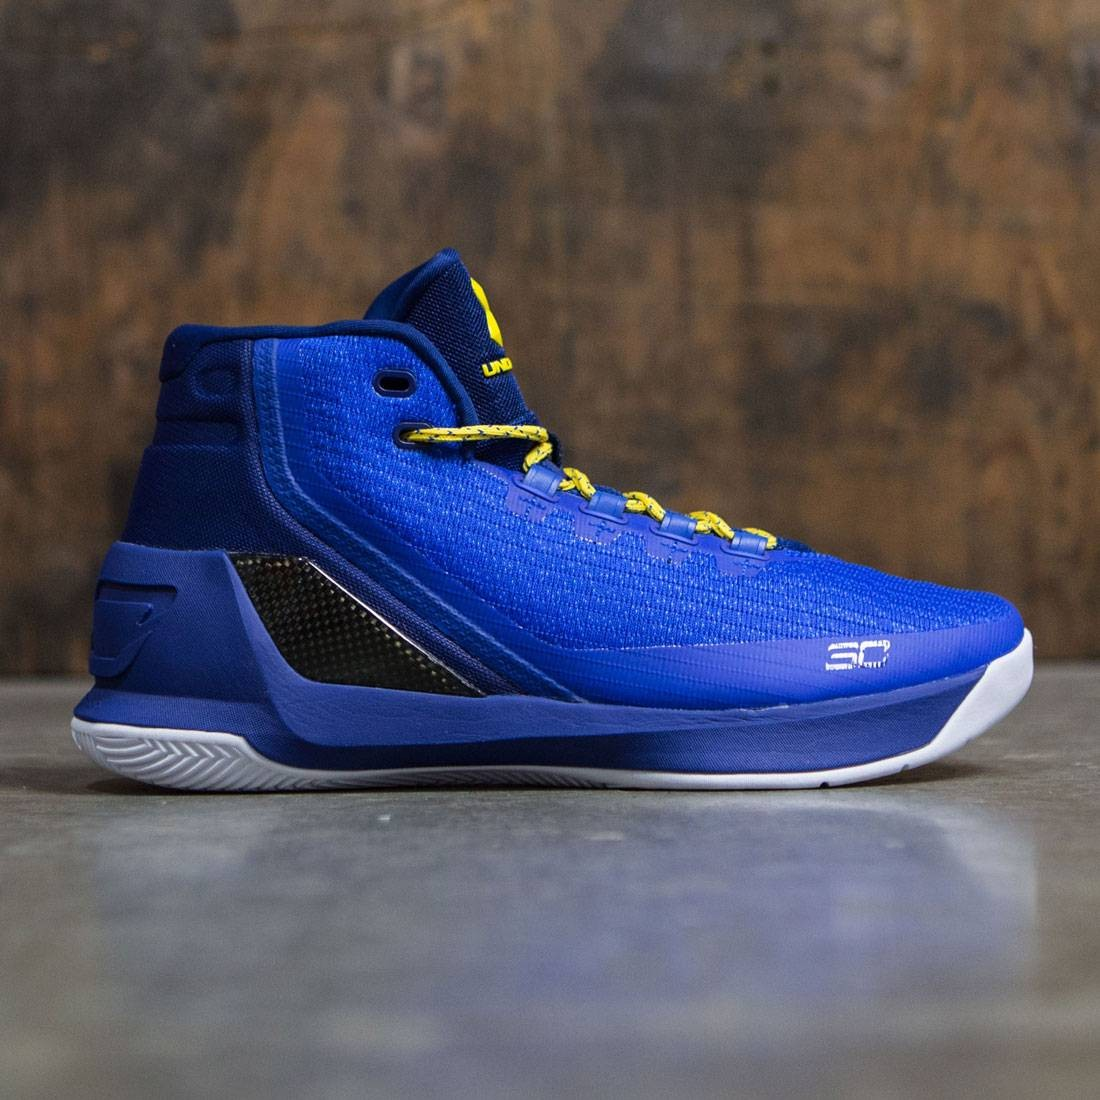 3c94eef098a Under Armour Men Curry 3 - Dub Nation Heritage blue yellow